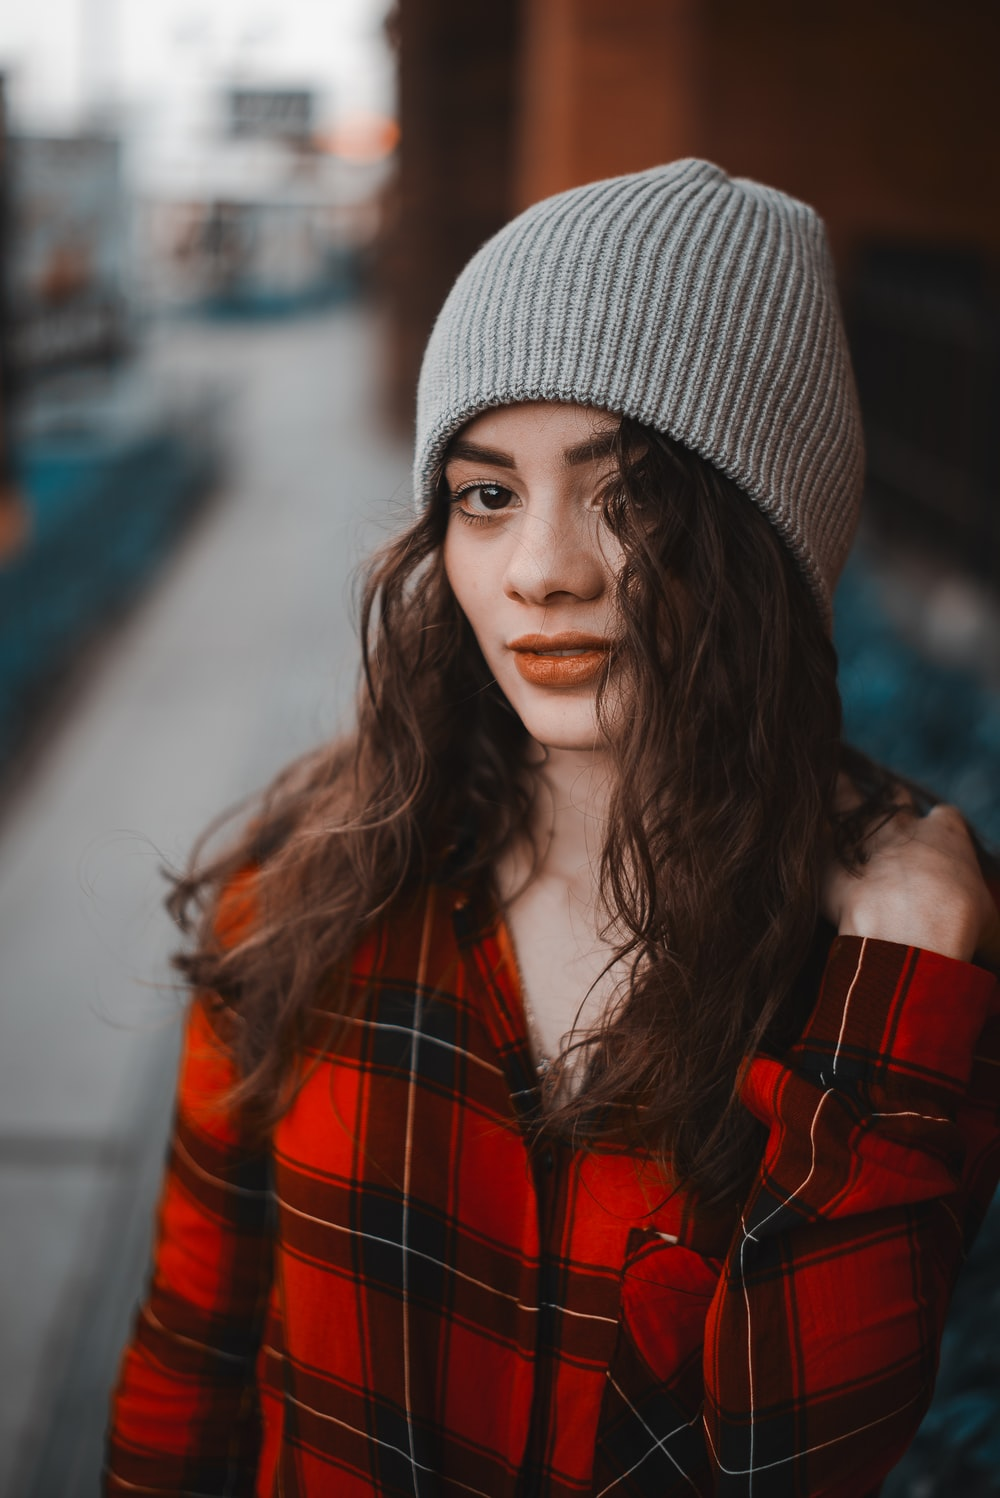 woman wearing gray knit cap and red and black plaid long-sleeved shirt